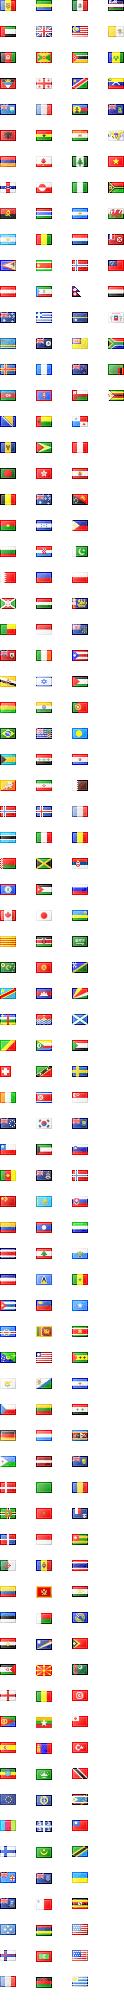 public/themes/default/assets/images/flags.png